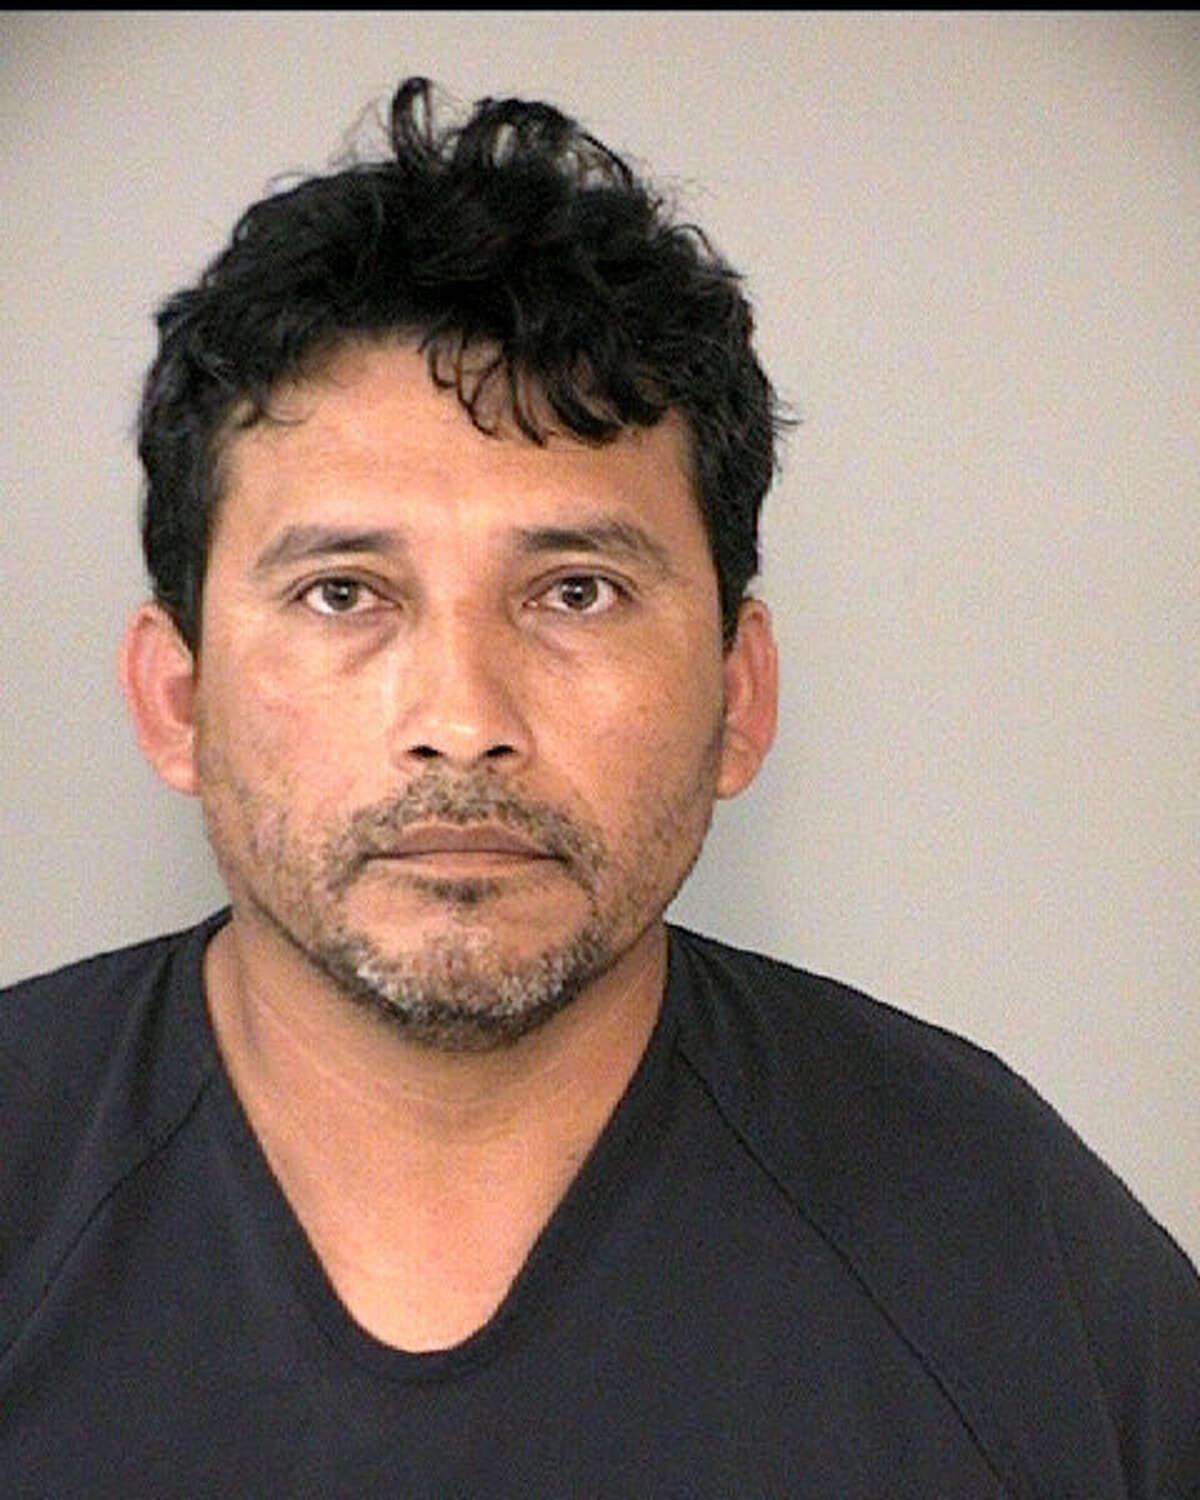 Apolinar Almazan was charged with prostitution.